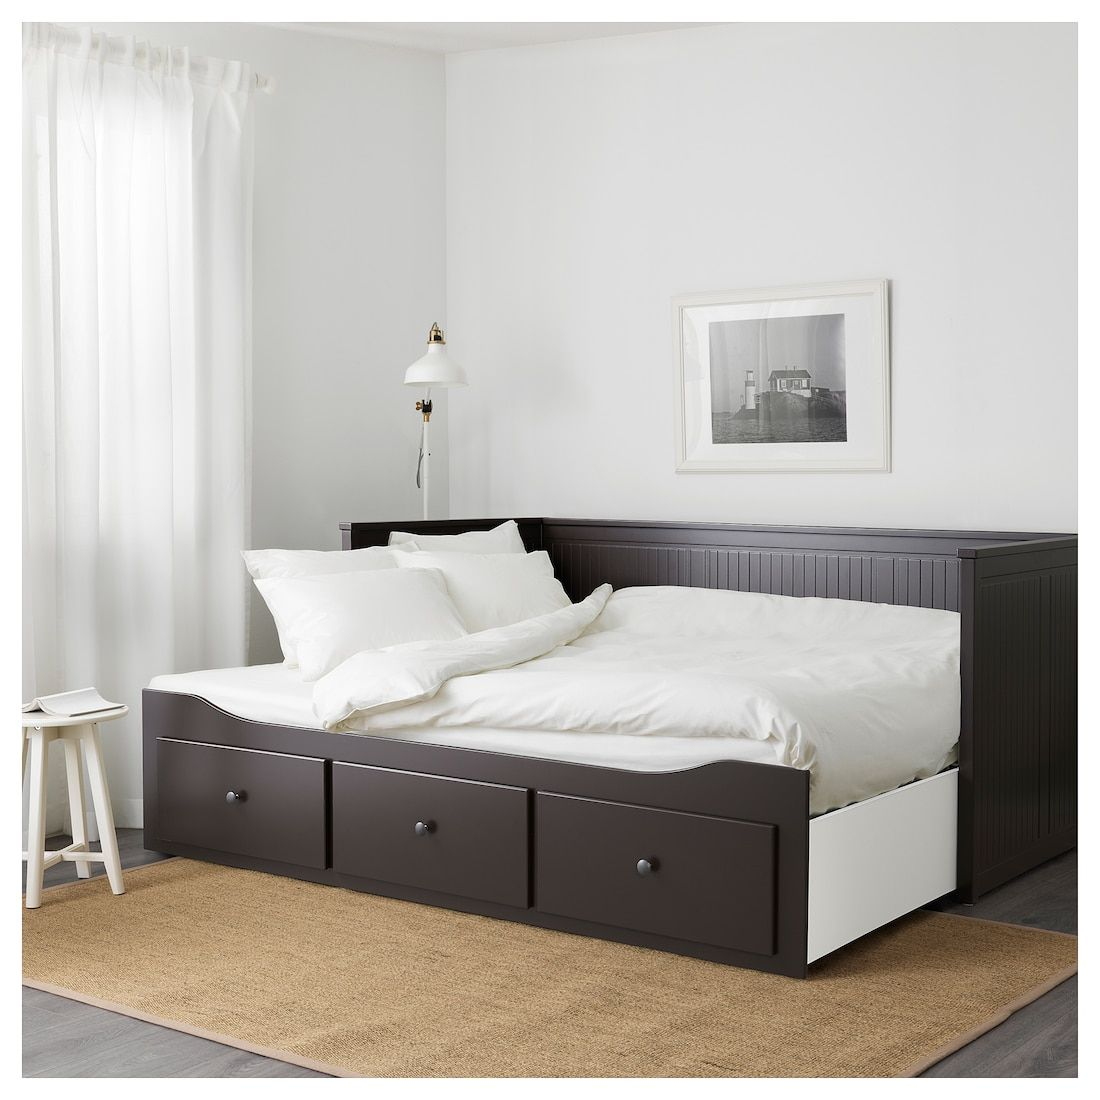 HEMNES Daybed frame with 3 drawers, blackbrown IKEA